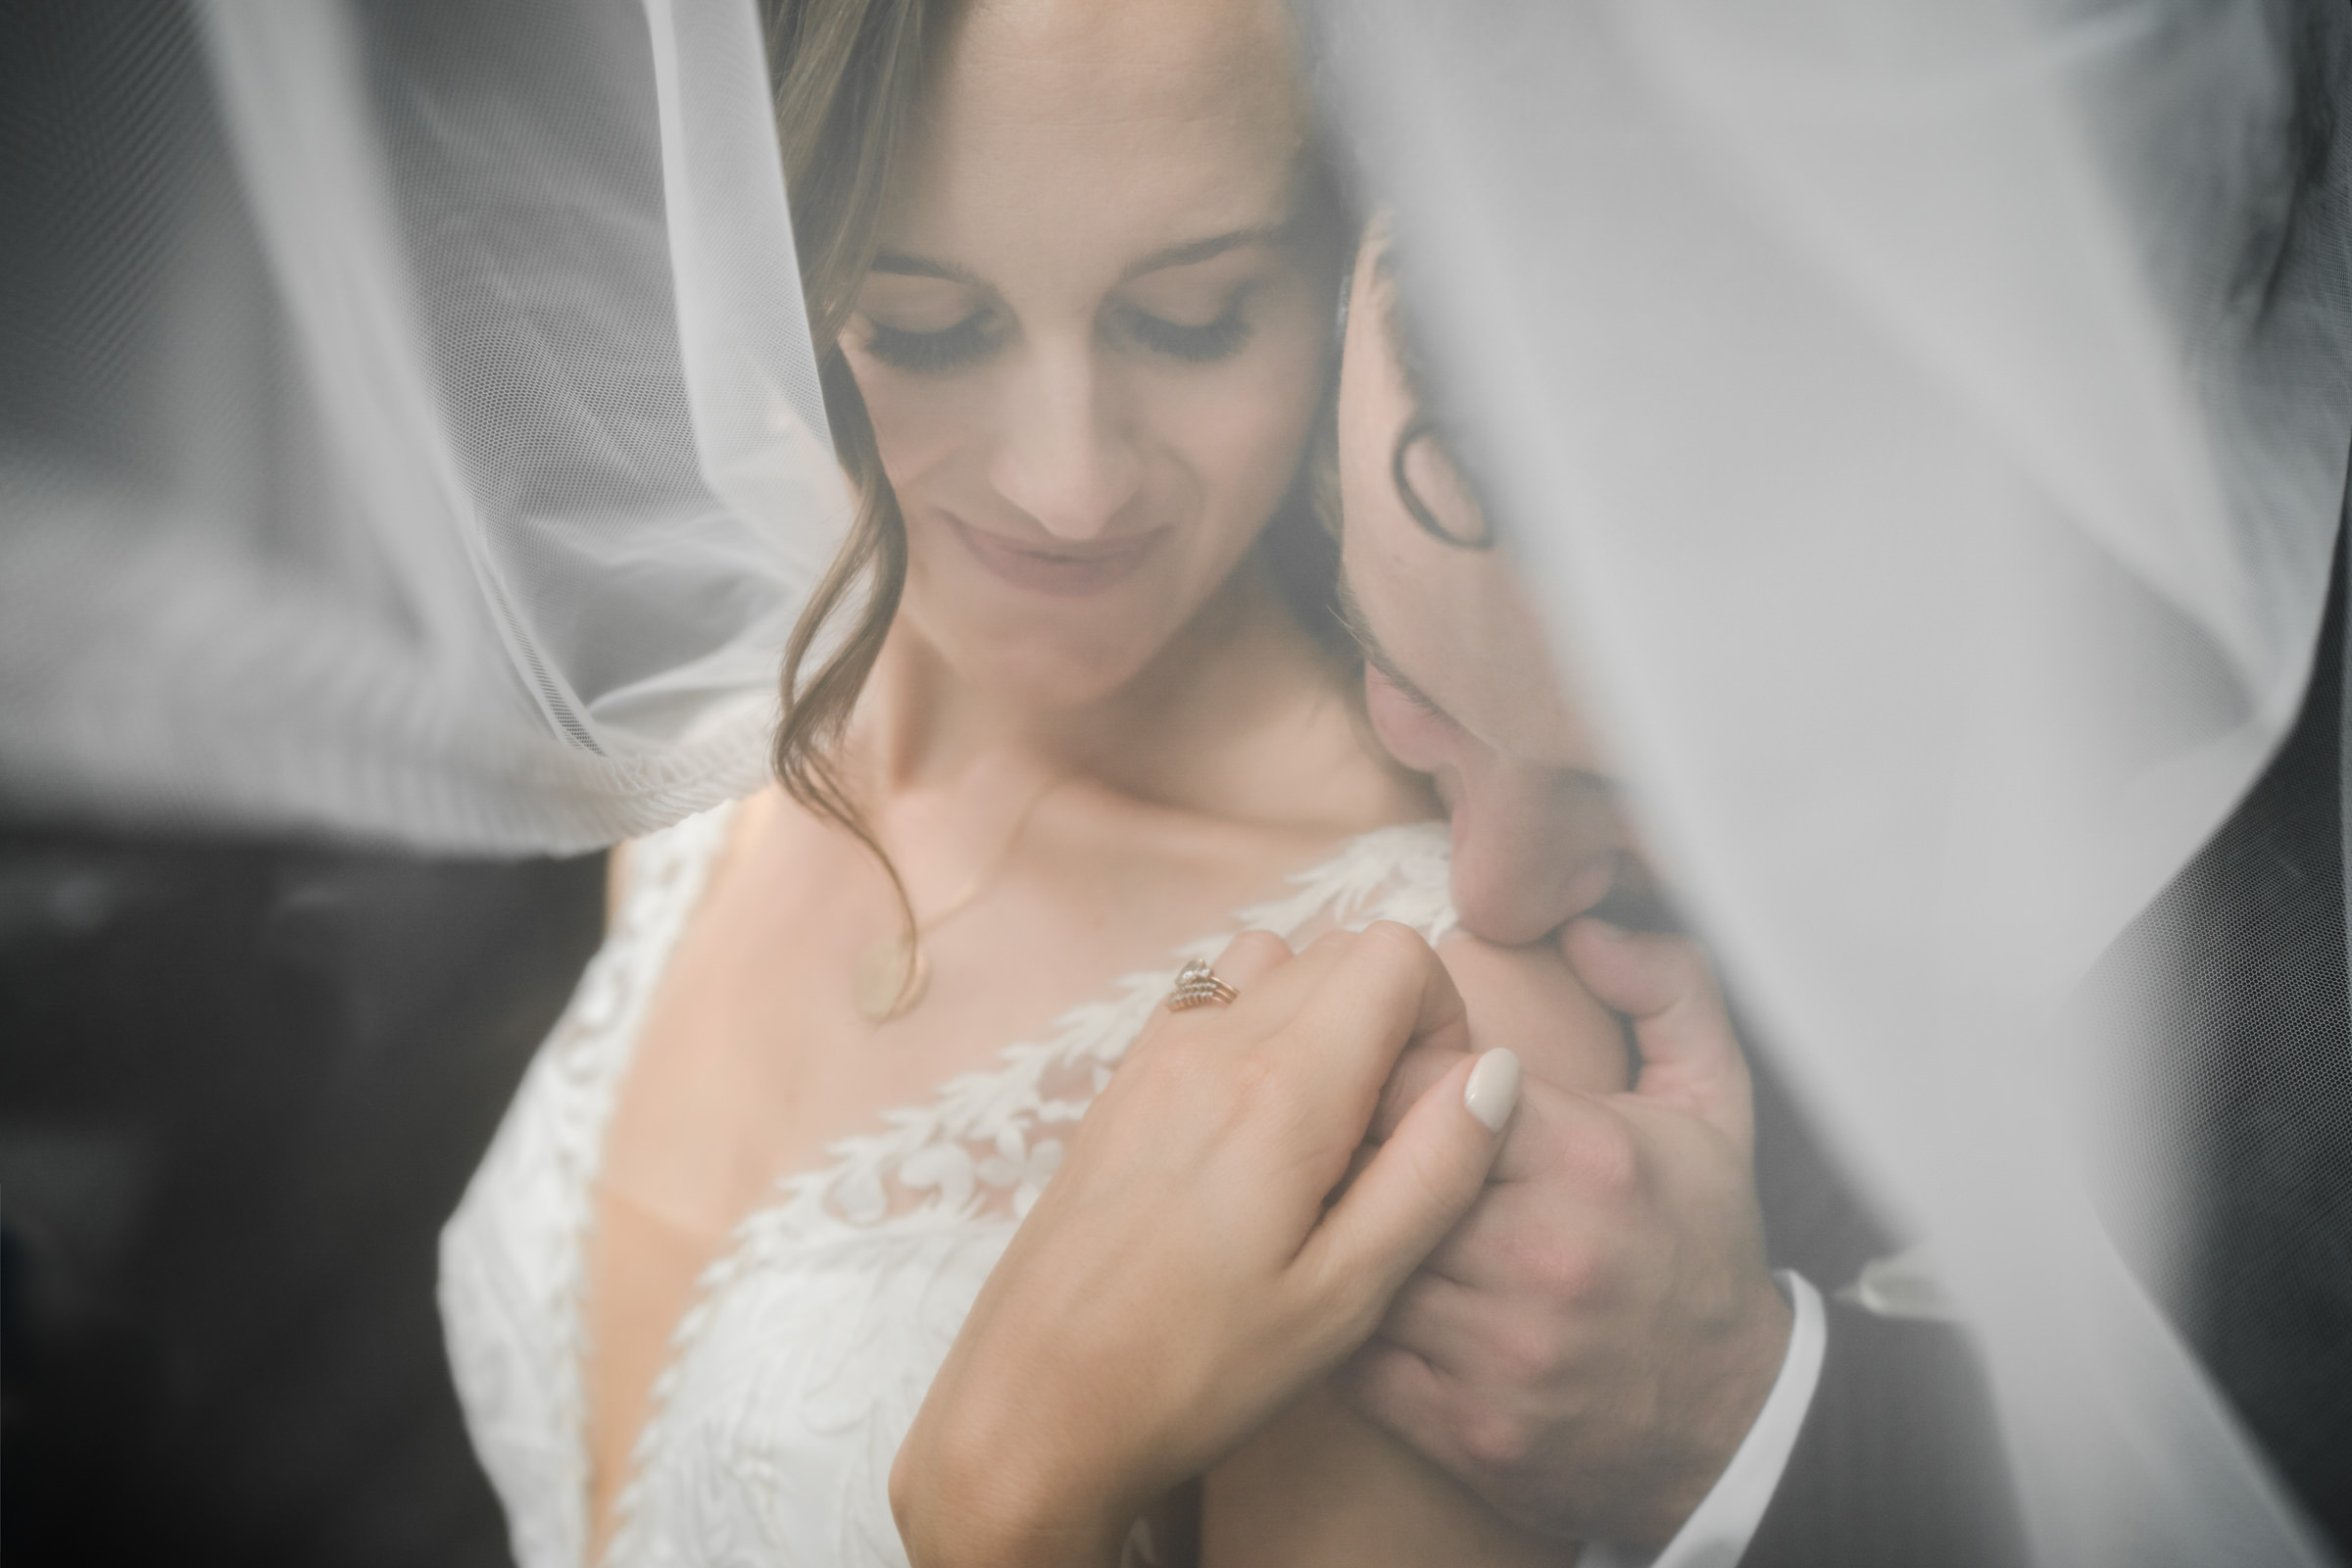 Bride and groom under veil - photo by Sasha Reiko Photography